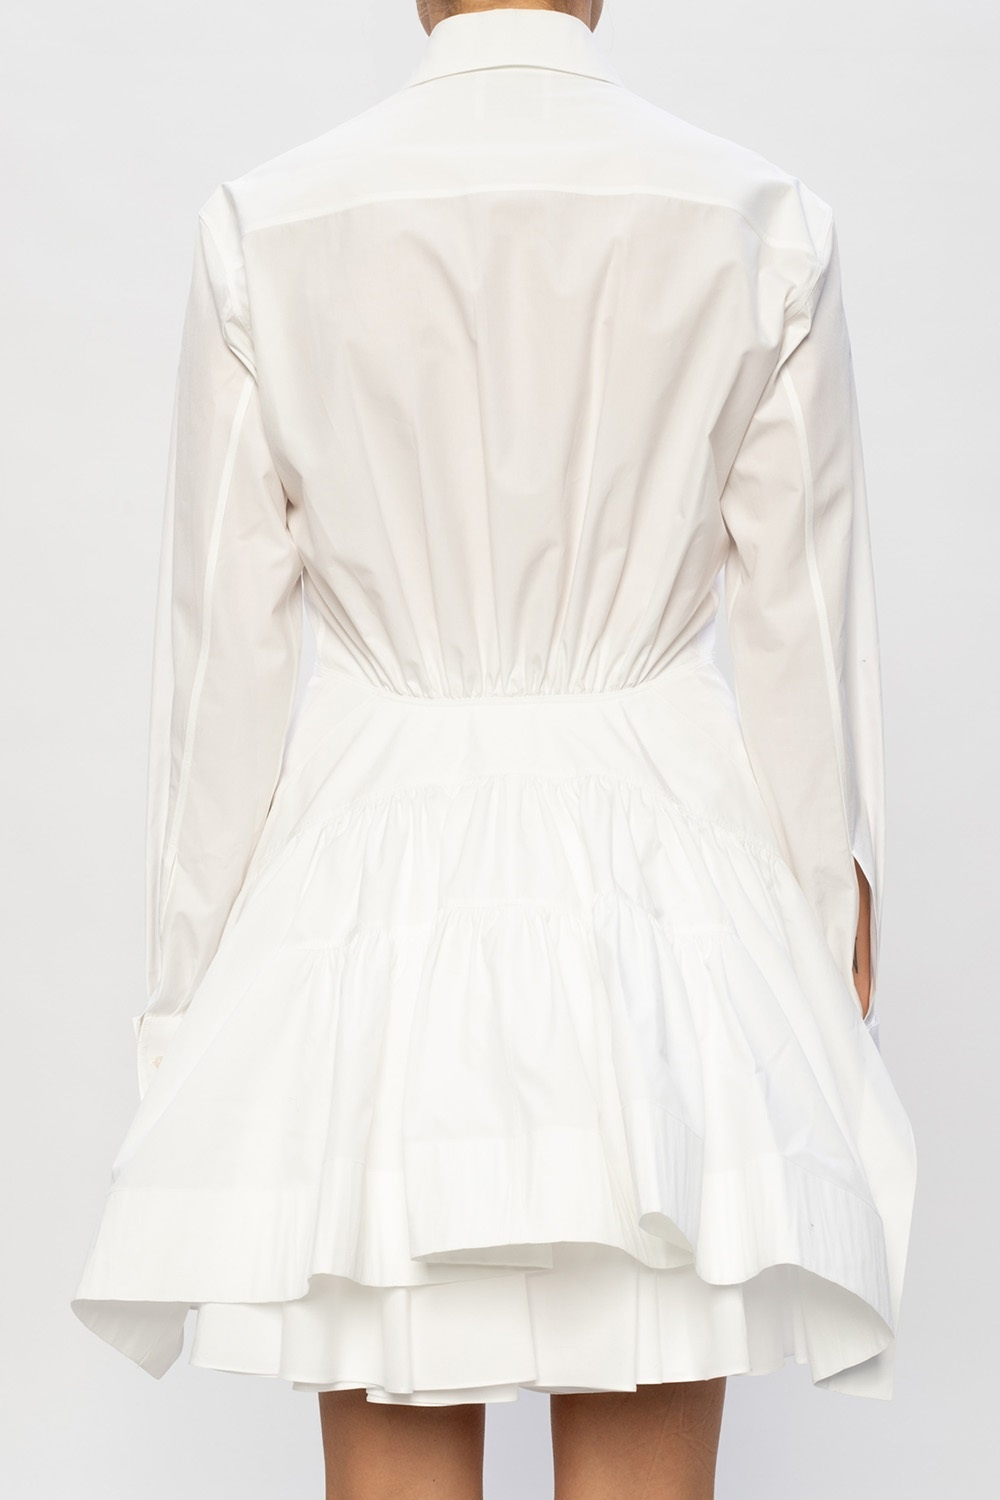 Alaia Shirt with stitching details